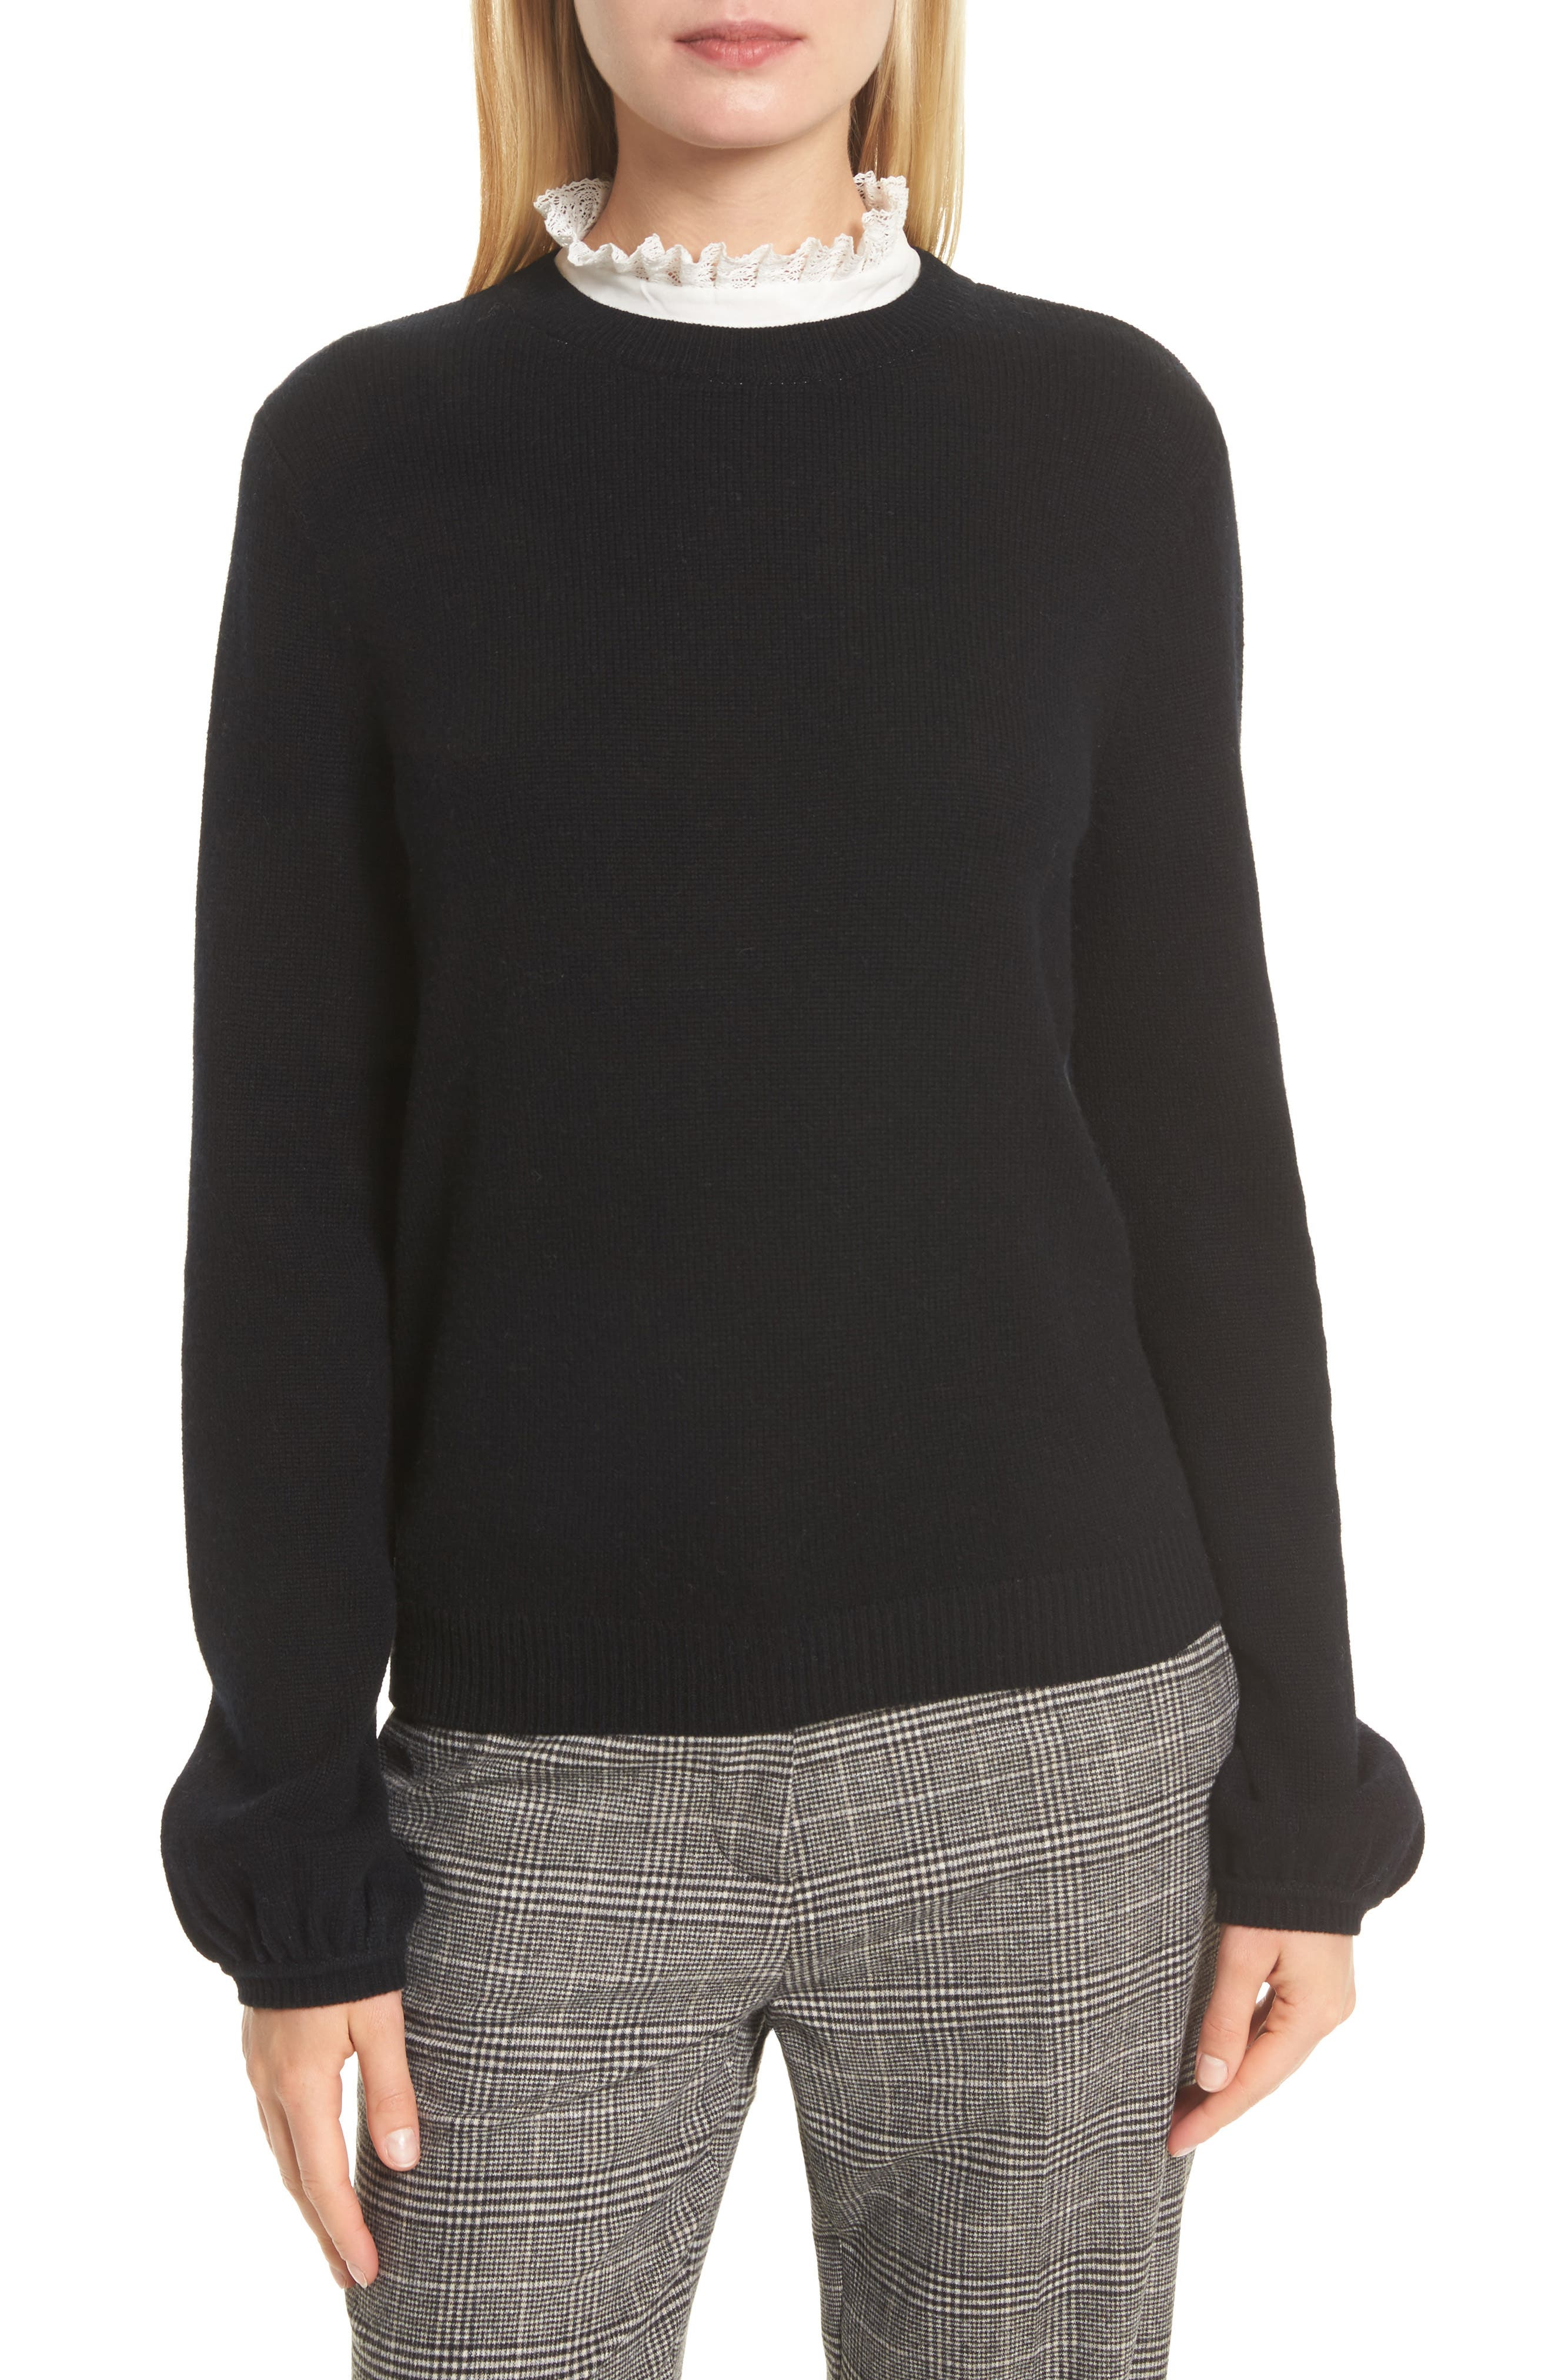 Joie Affie Wool & Cashmere Sweater